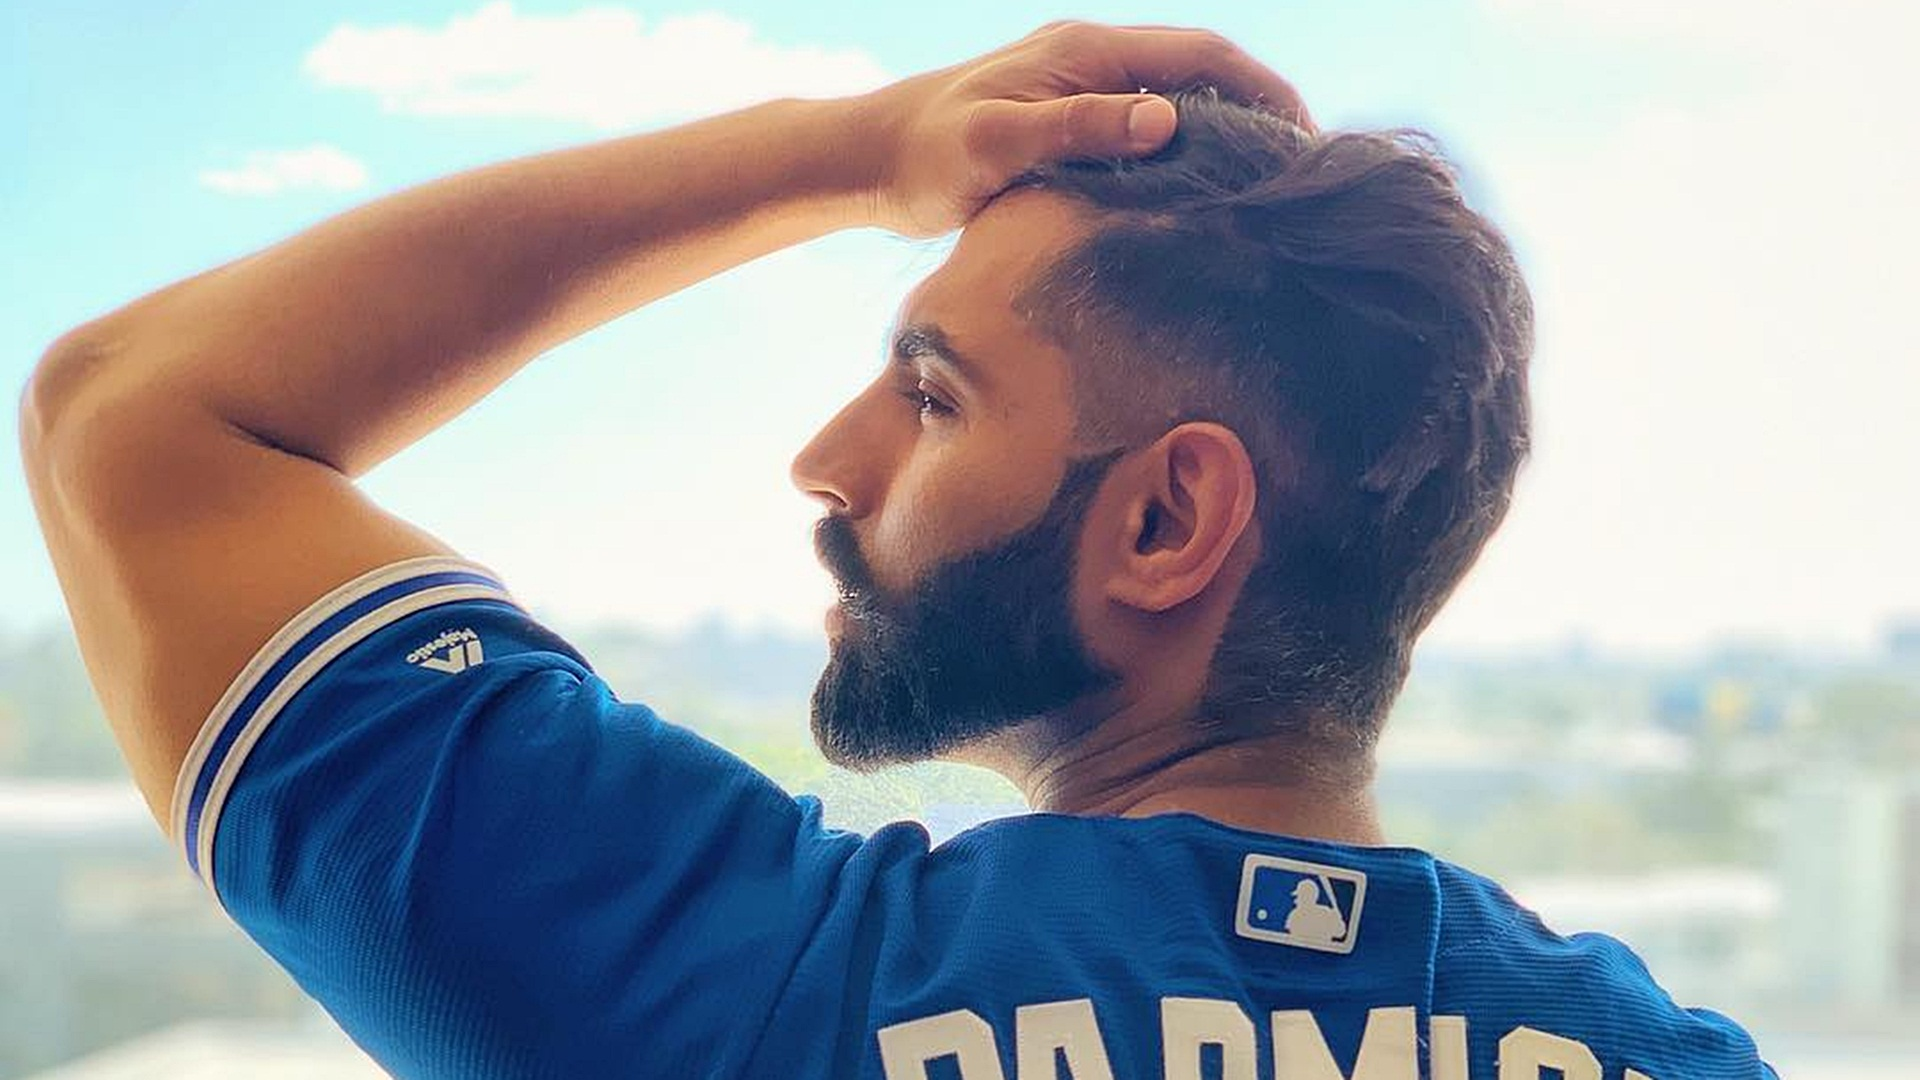 Parmish Verma Hairstyle posted by Michelle Mercado